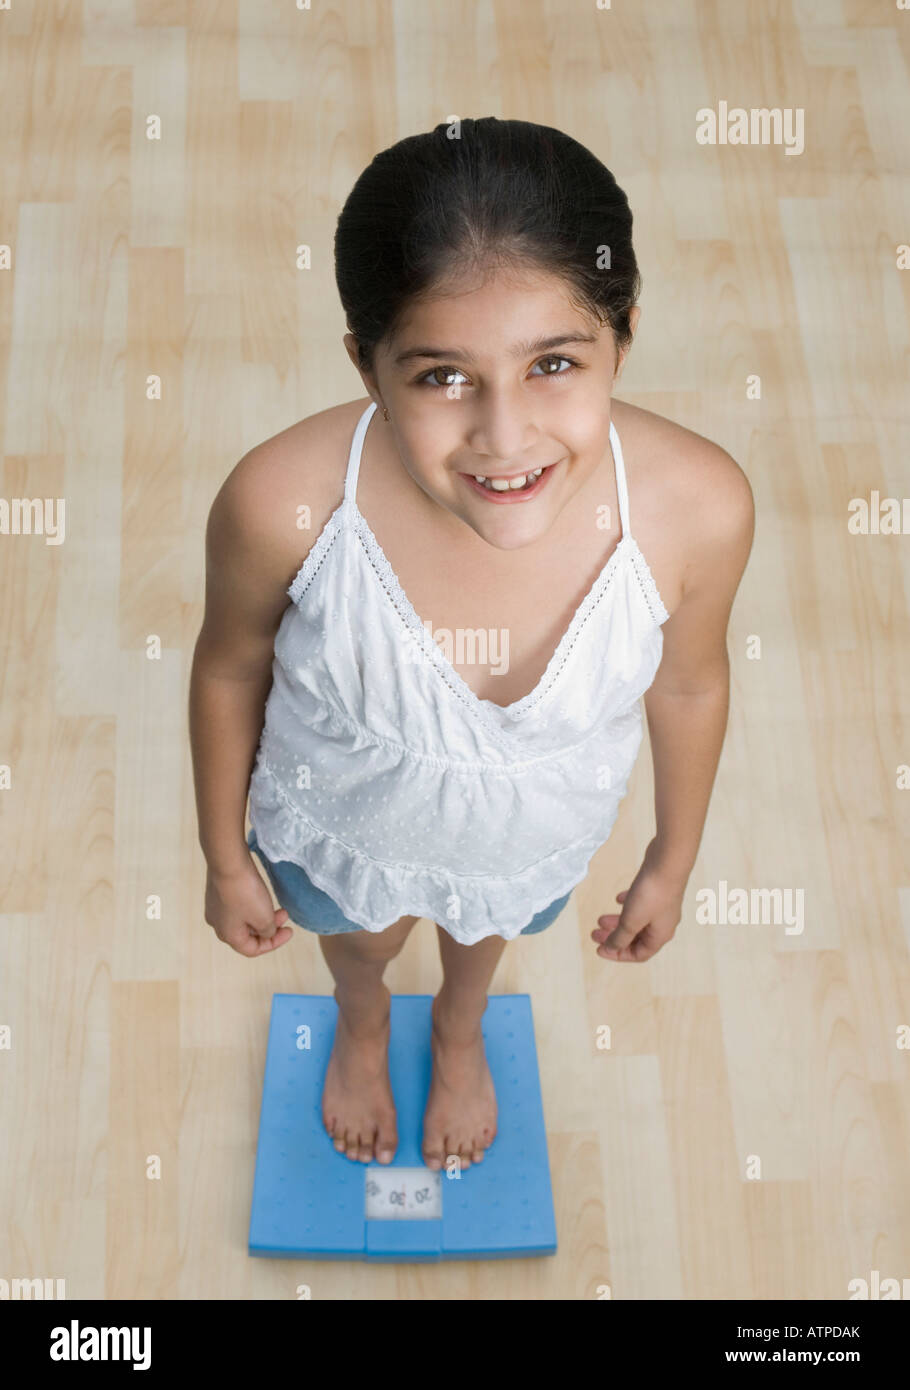 High angle view of a girl standing on a weighing scale and smiling - Stock Image